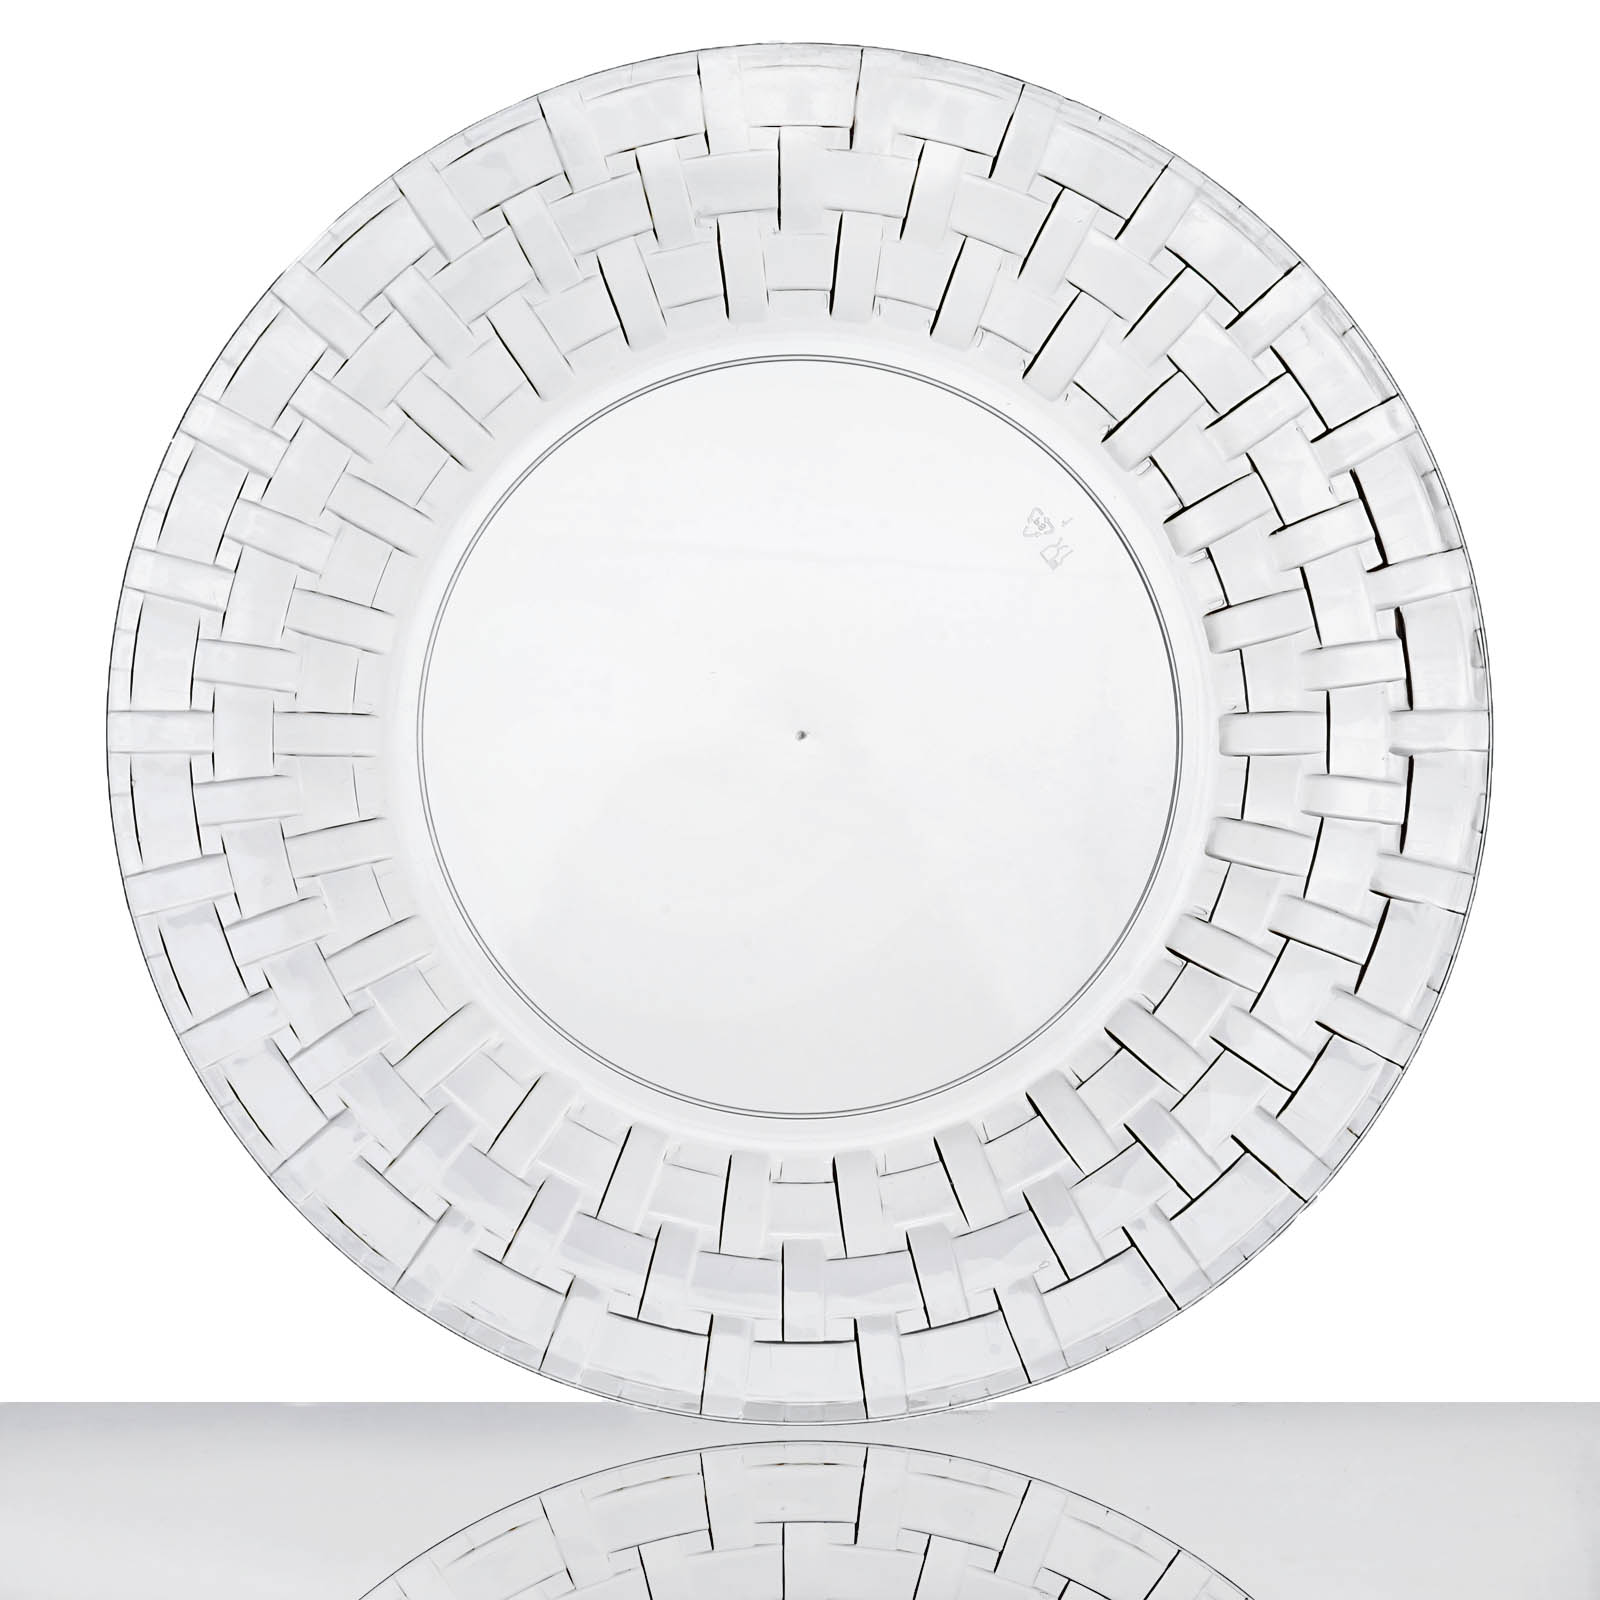 Efavormart 50 Pcs - Clear Round Disposable Plastic Plate Dinner Plates for Wedding Party Banquet Events - Basketweave Collection